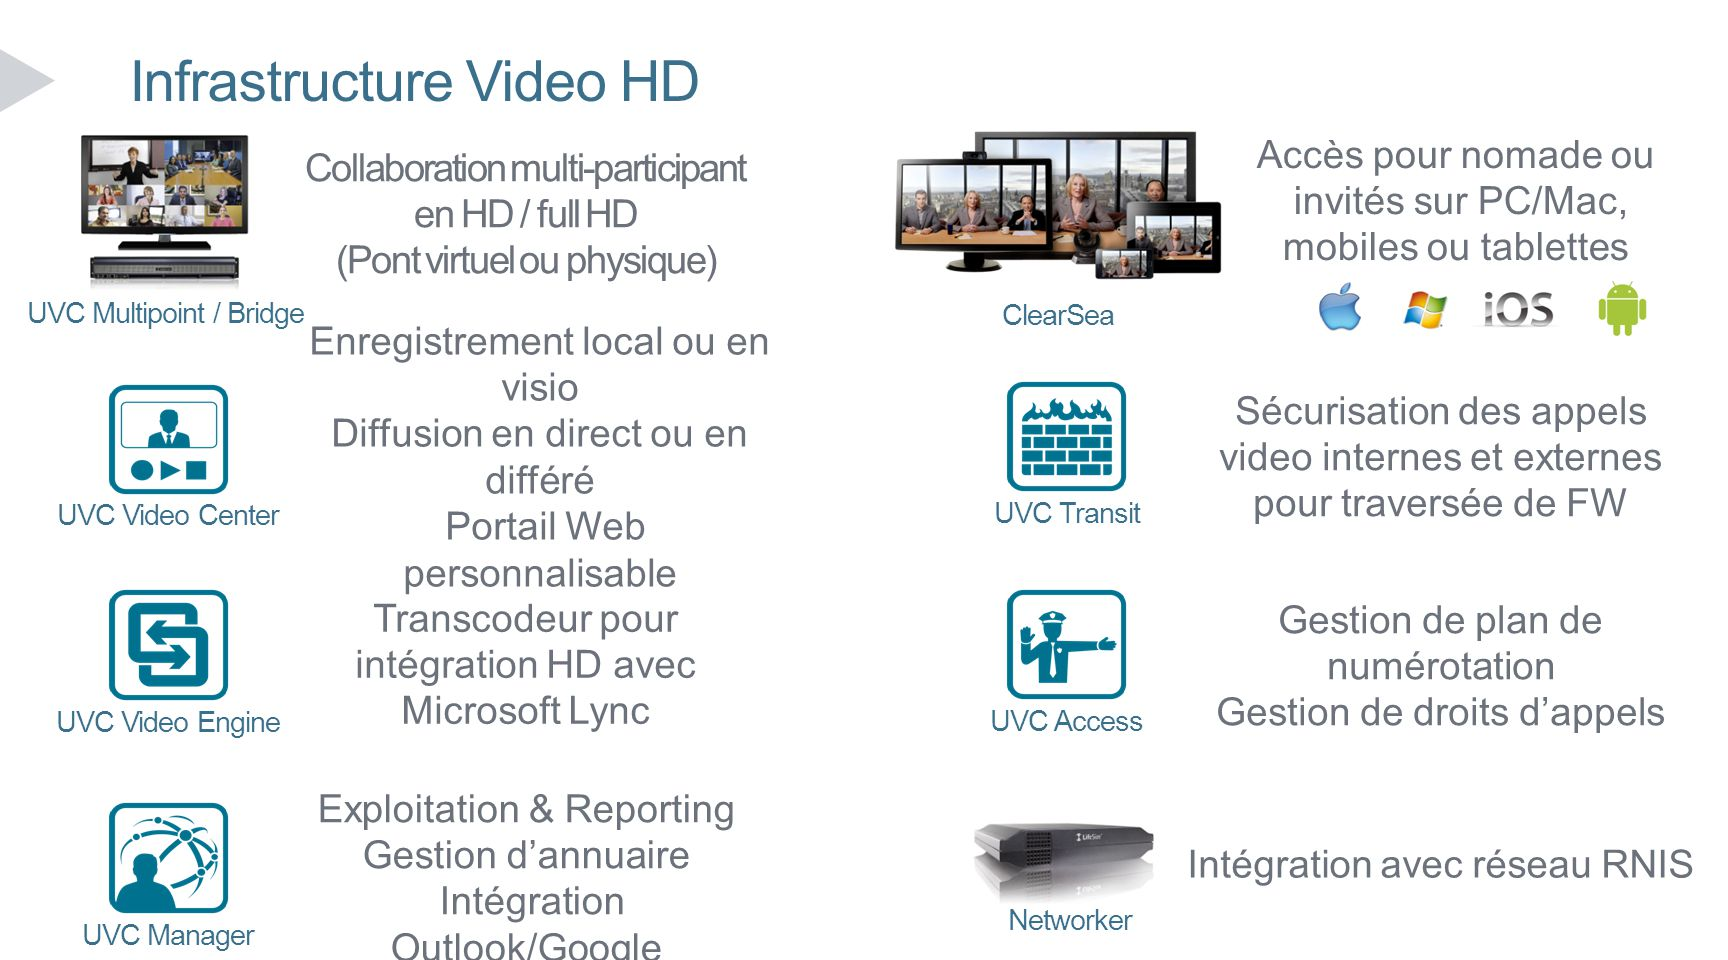 Infrastructure Video HD